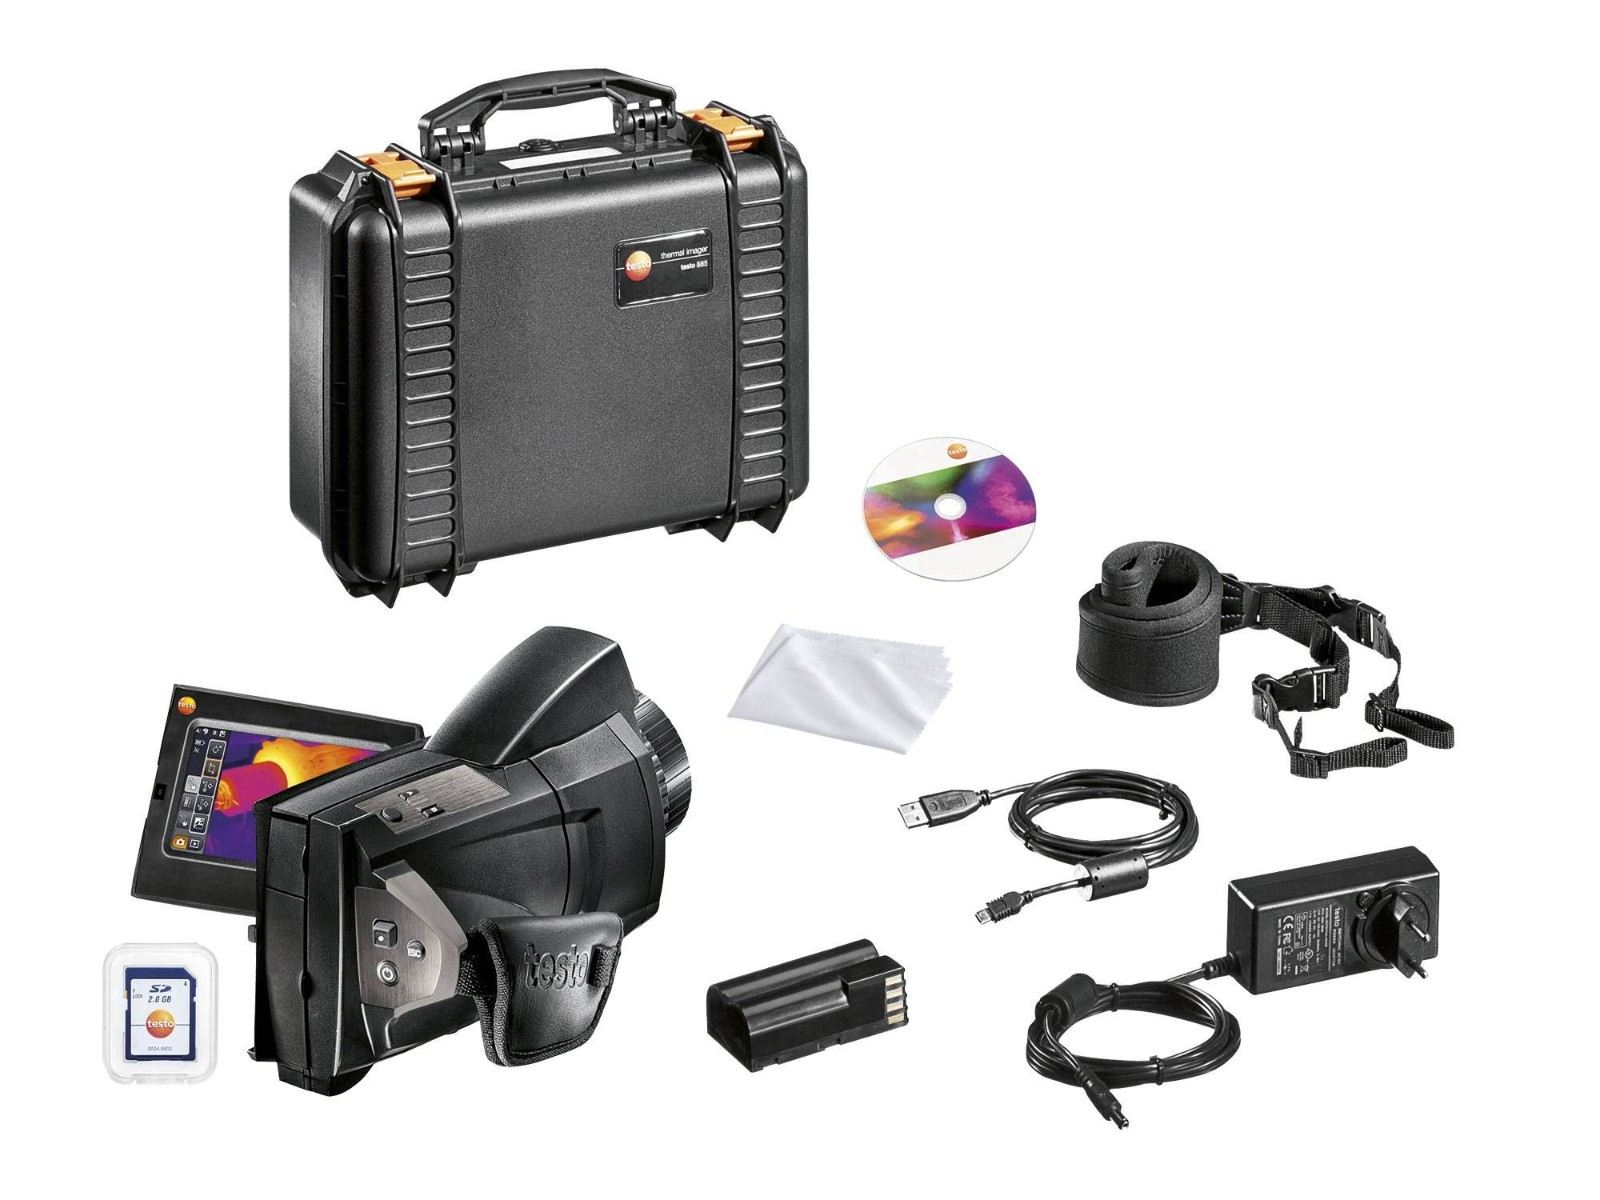 Testo 885 set - Thermal Imager with Super-telephoto Lens and One Lens